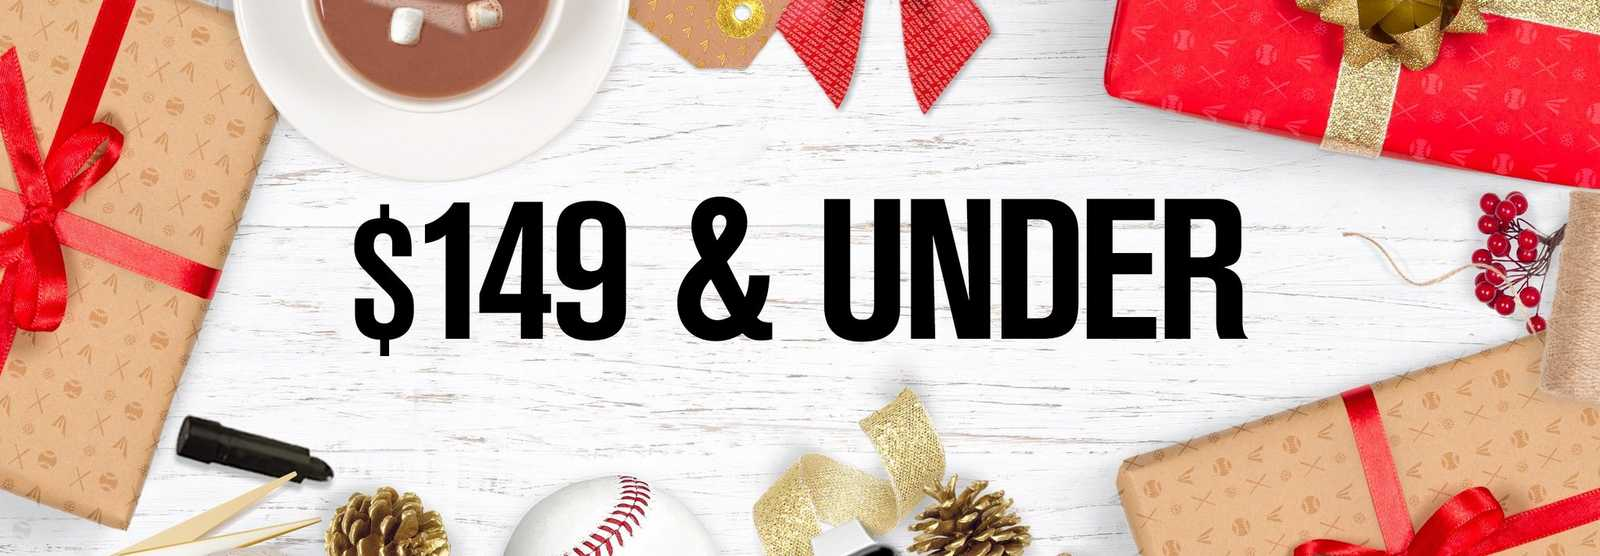 baseball-149-and-under-gift-guide